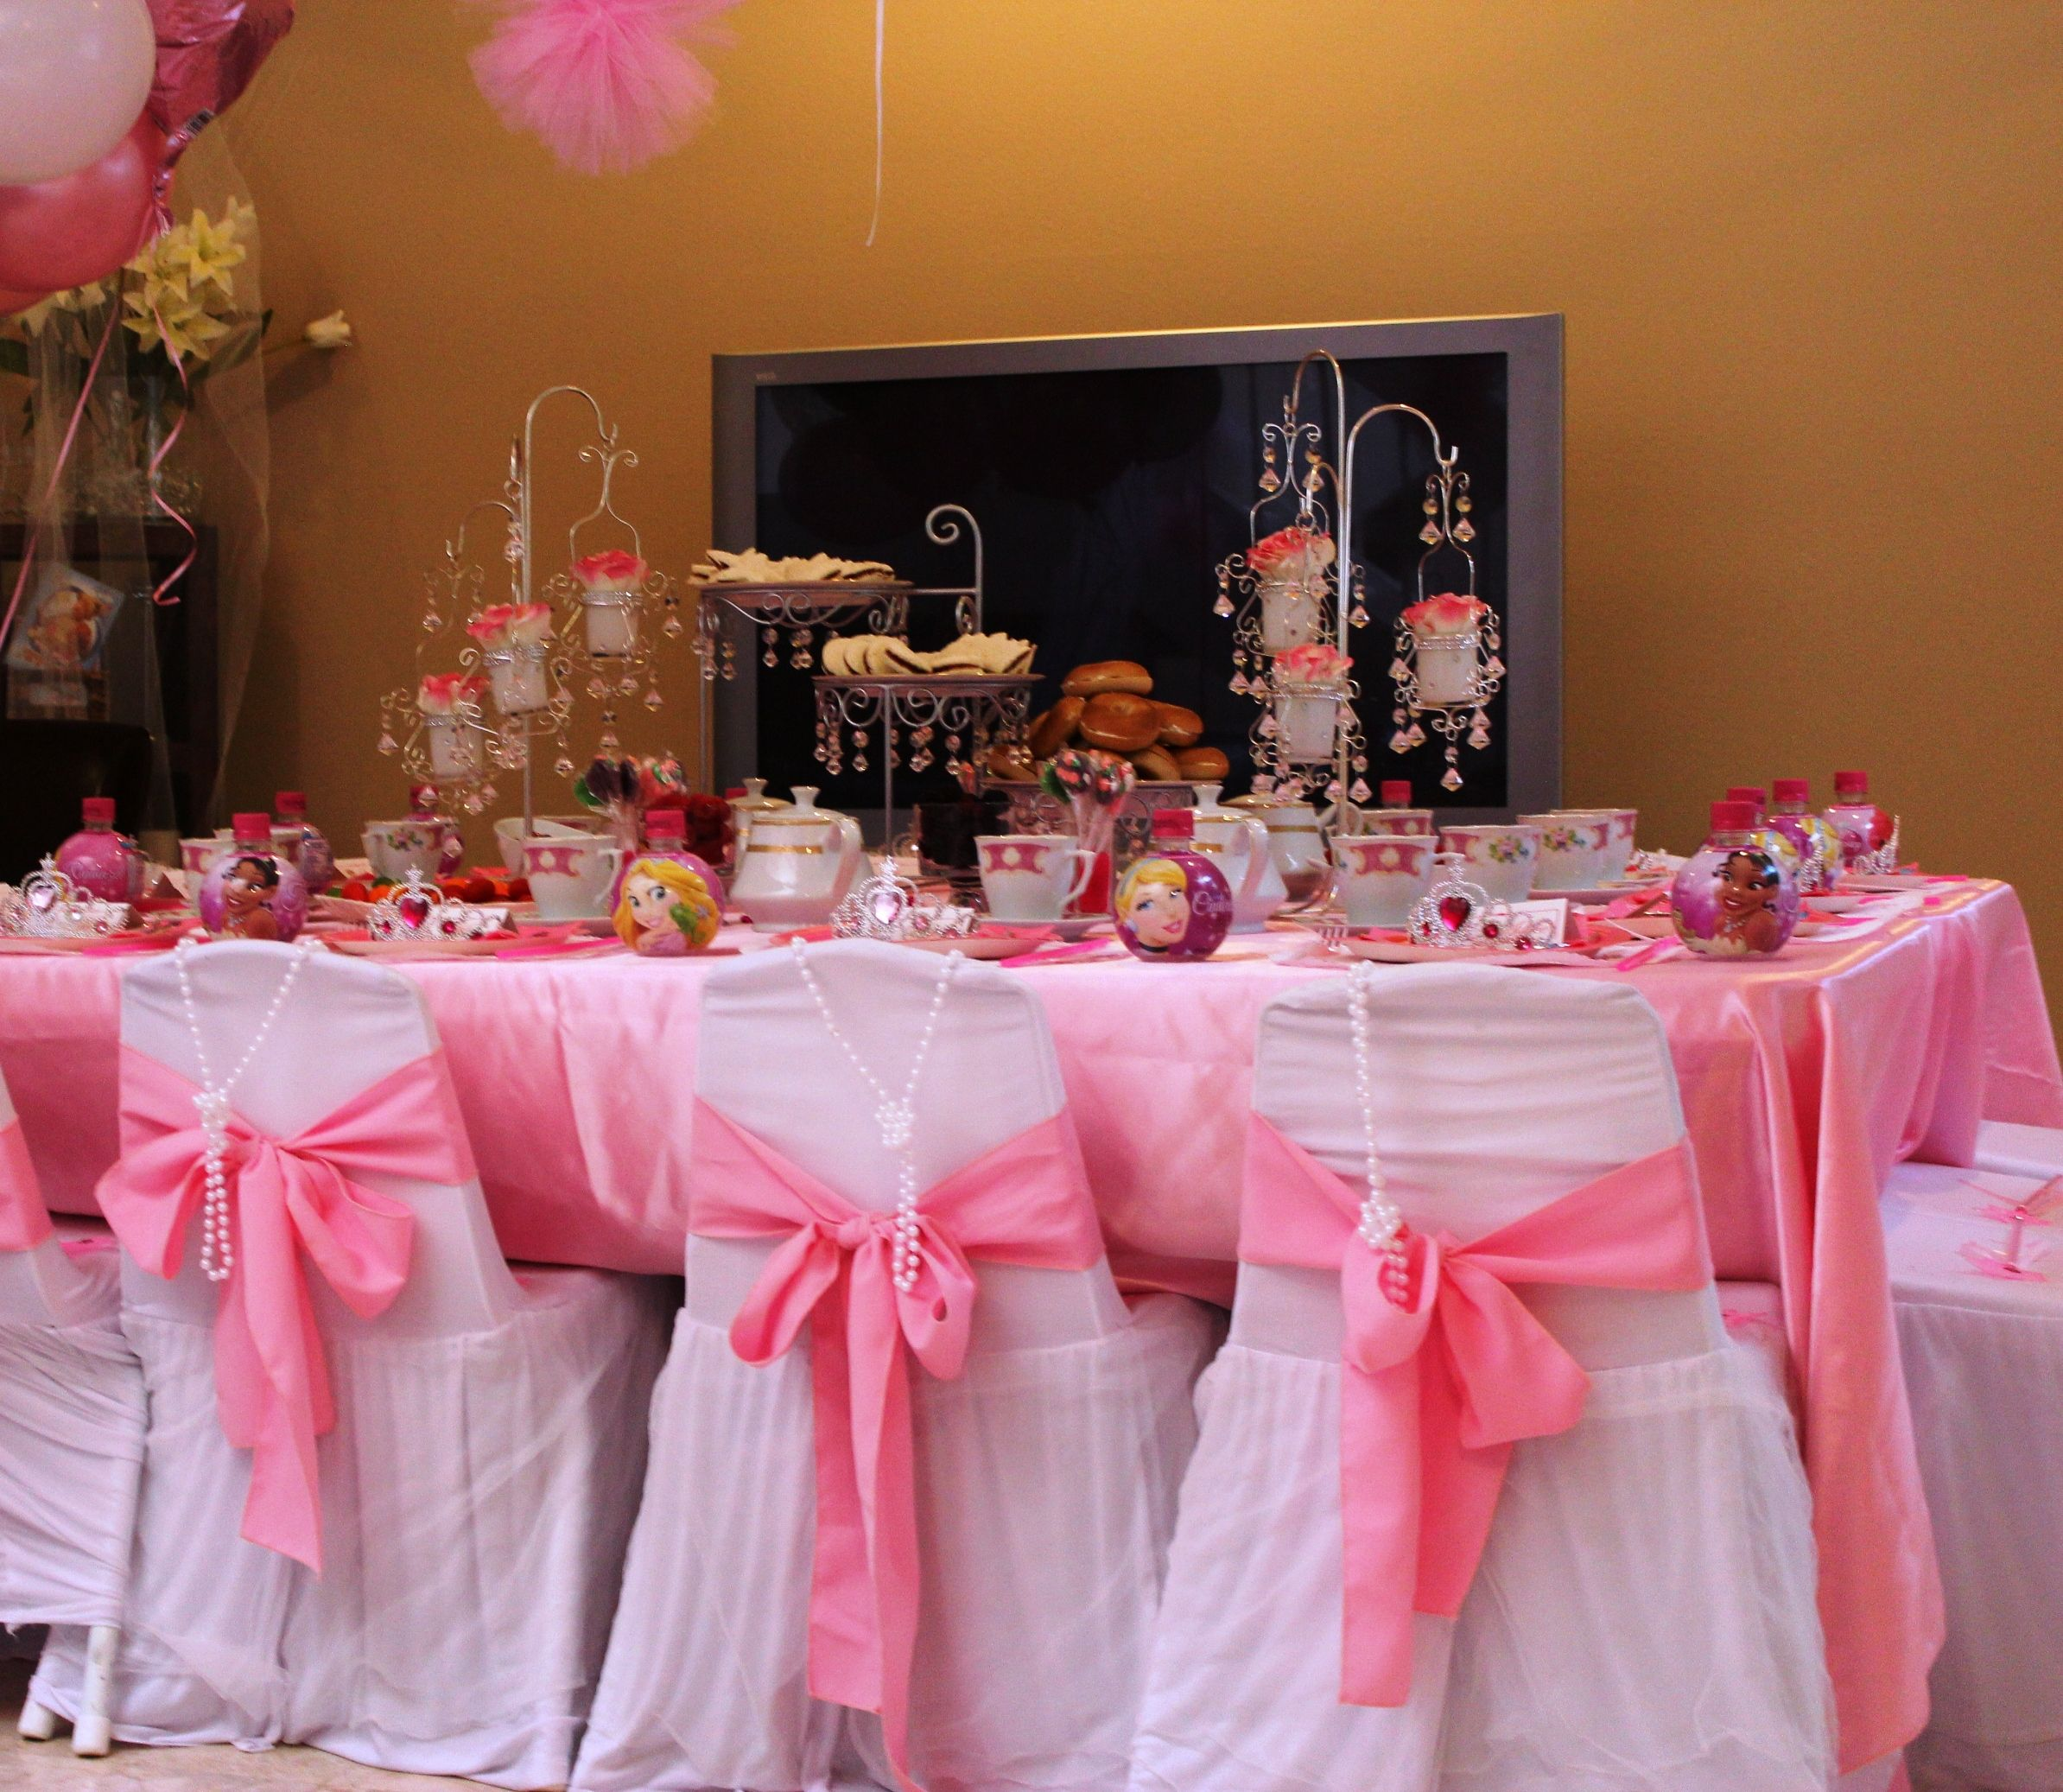 Table decoration for party - Princess Tea Party Ideas Kid Sized Tables And Chairs With Princess Style Chair Covers